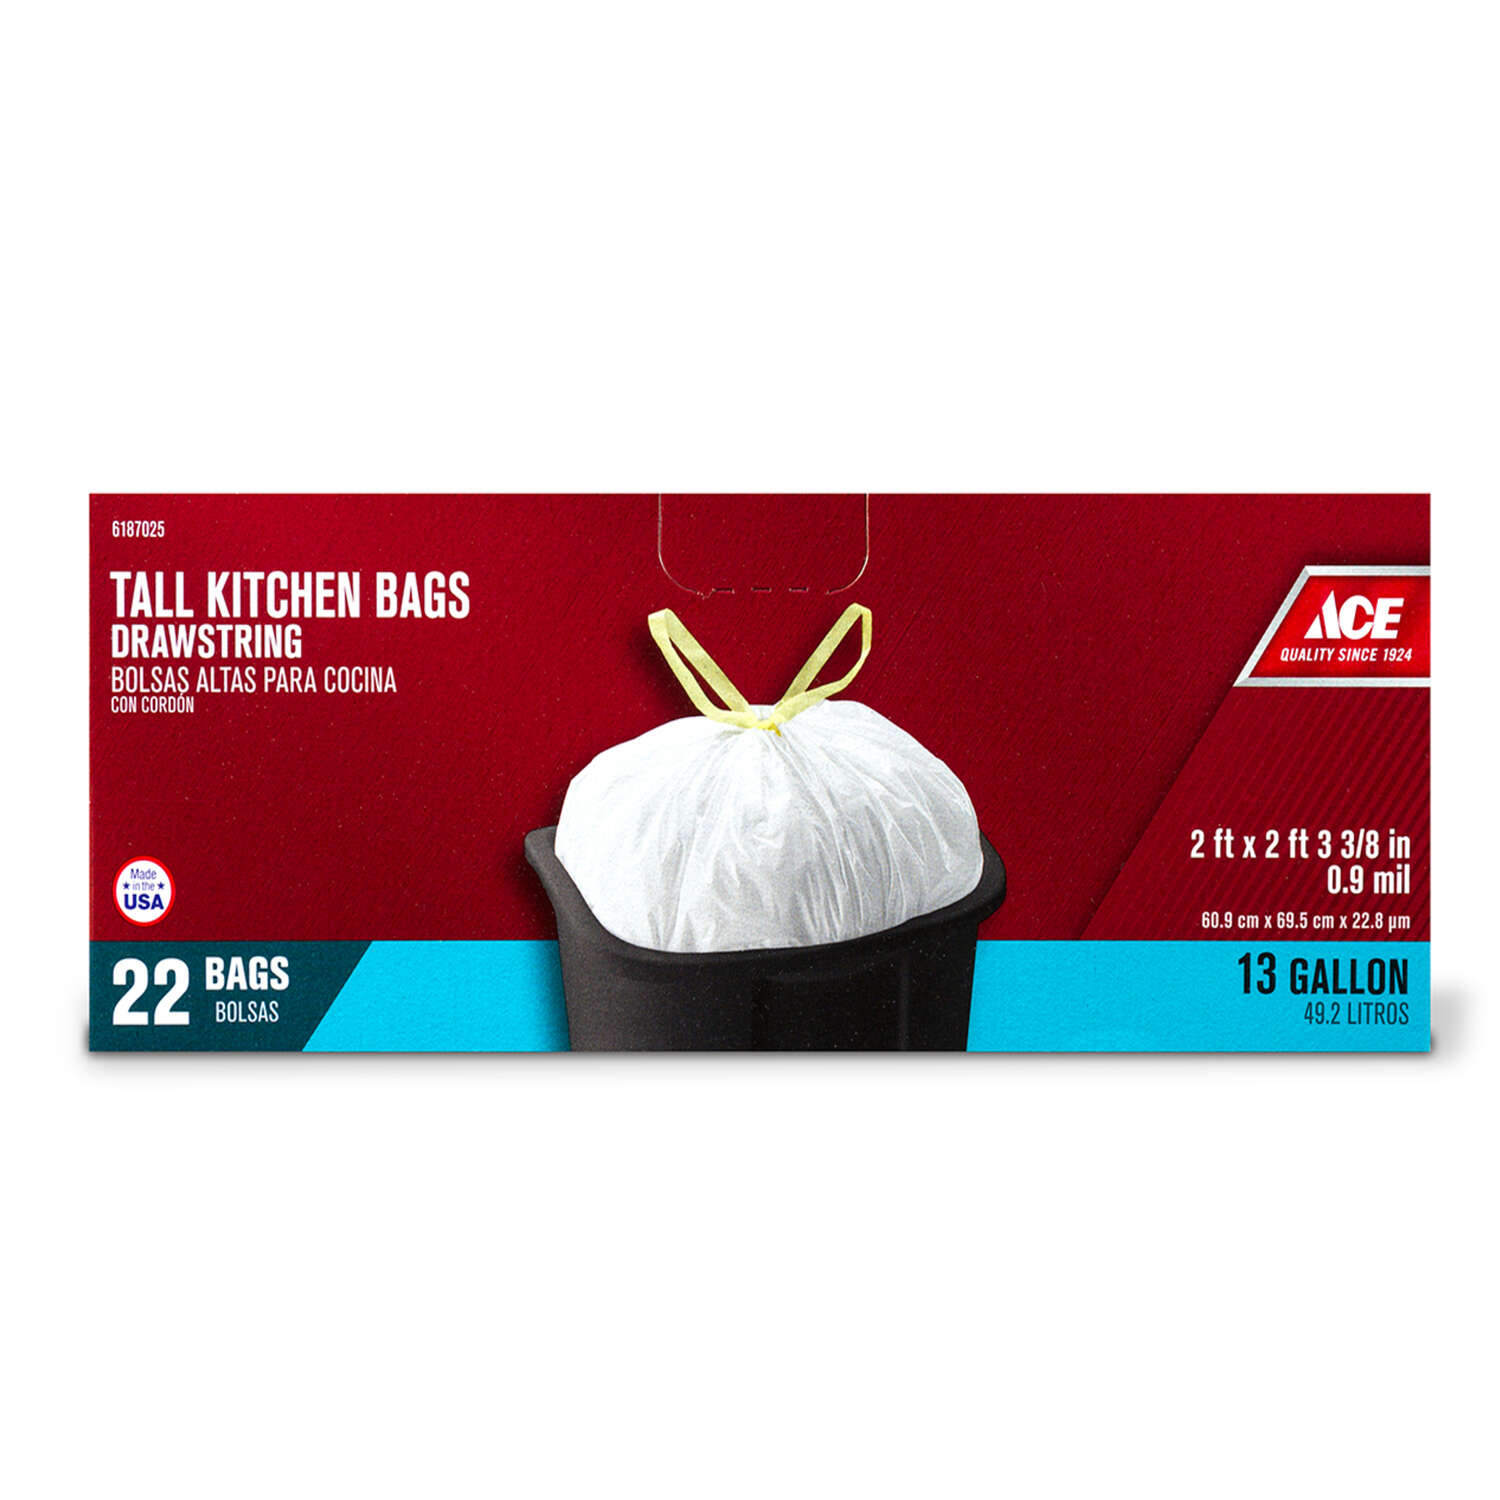 Ace 13 gal. Tall Kitchen Bags Drawstring 22 pk